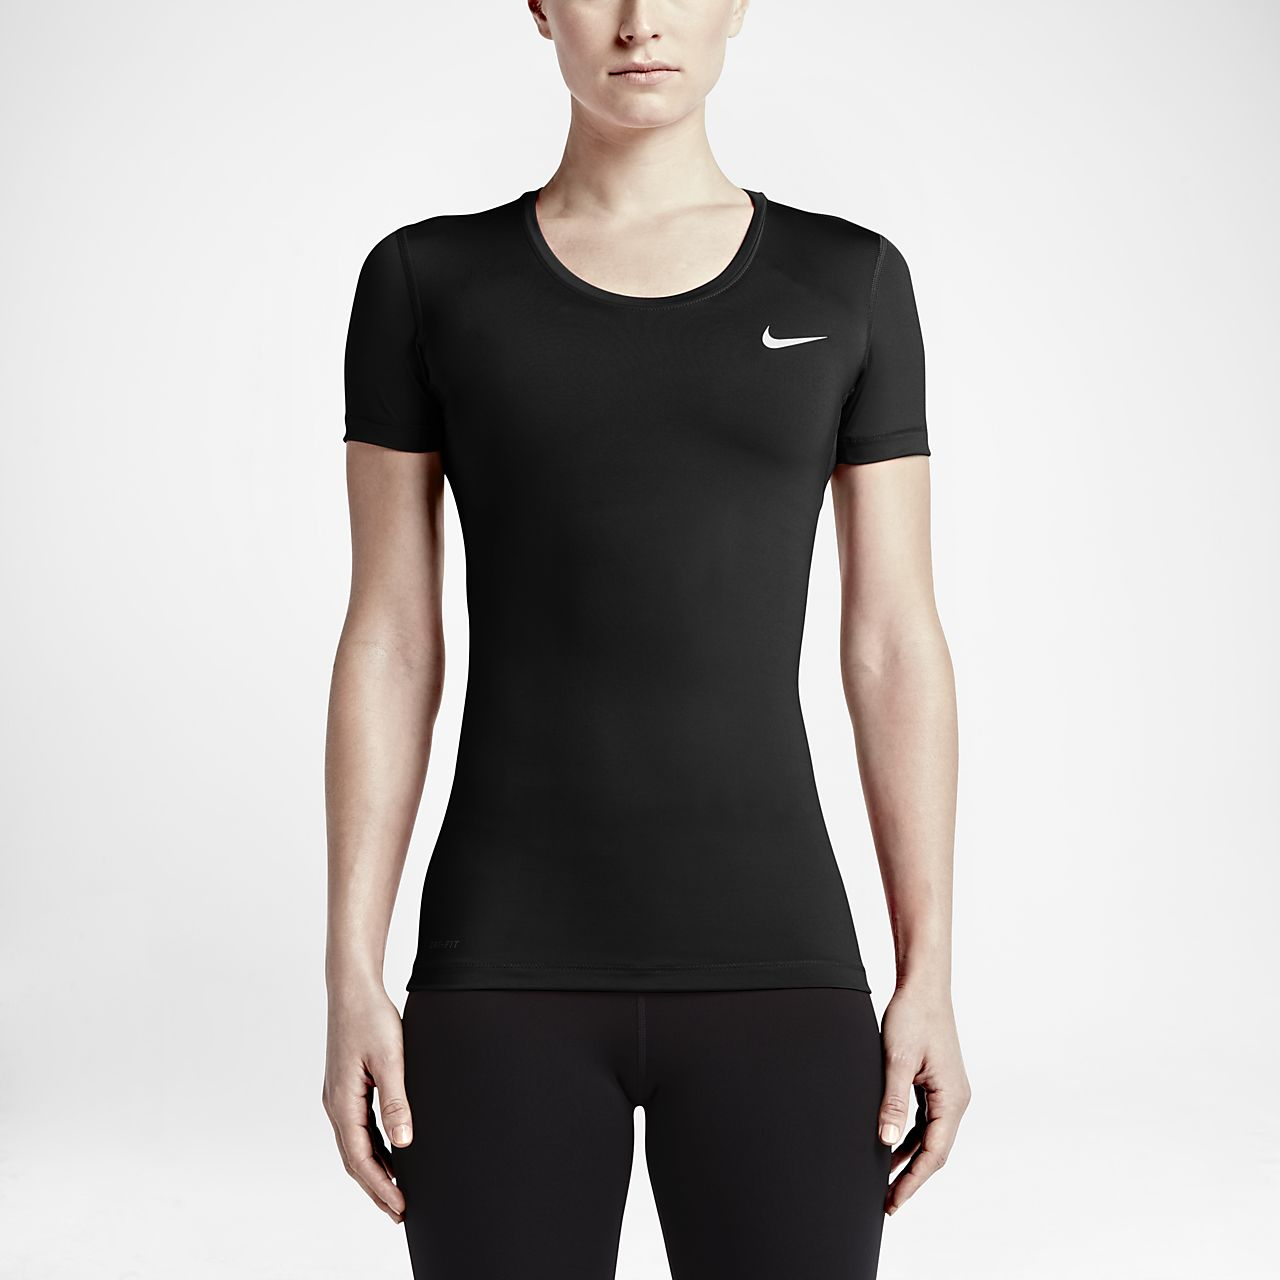 Clothing Sports & Outdoor Clothing Nike Womens Pro Short Sleeve Top